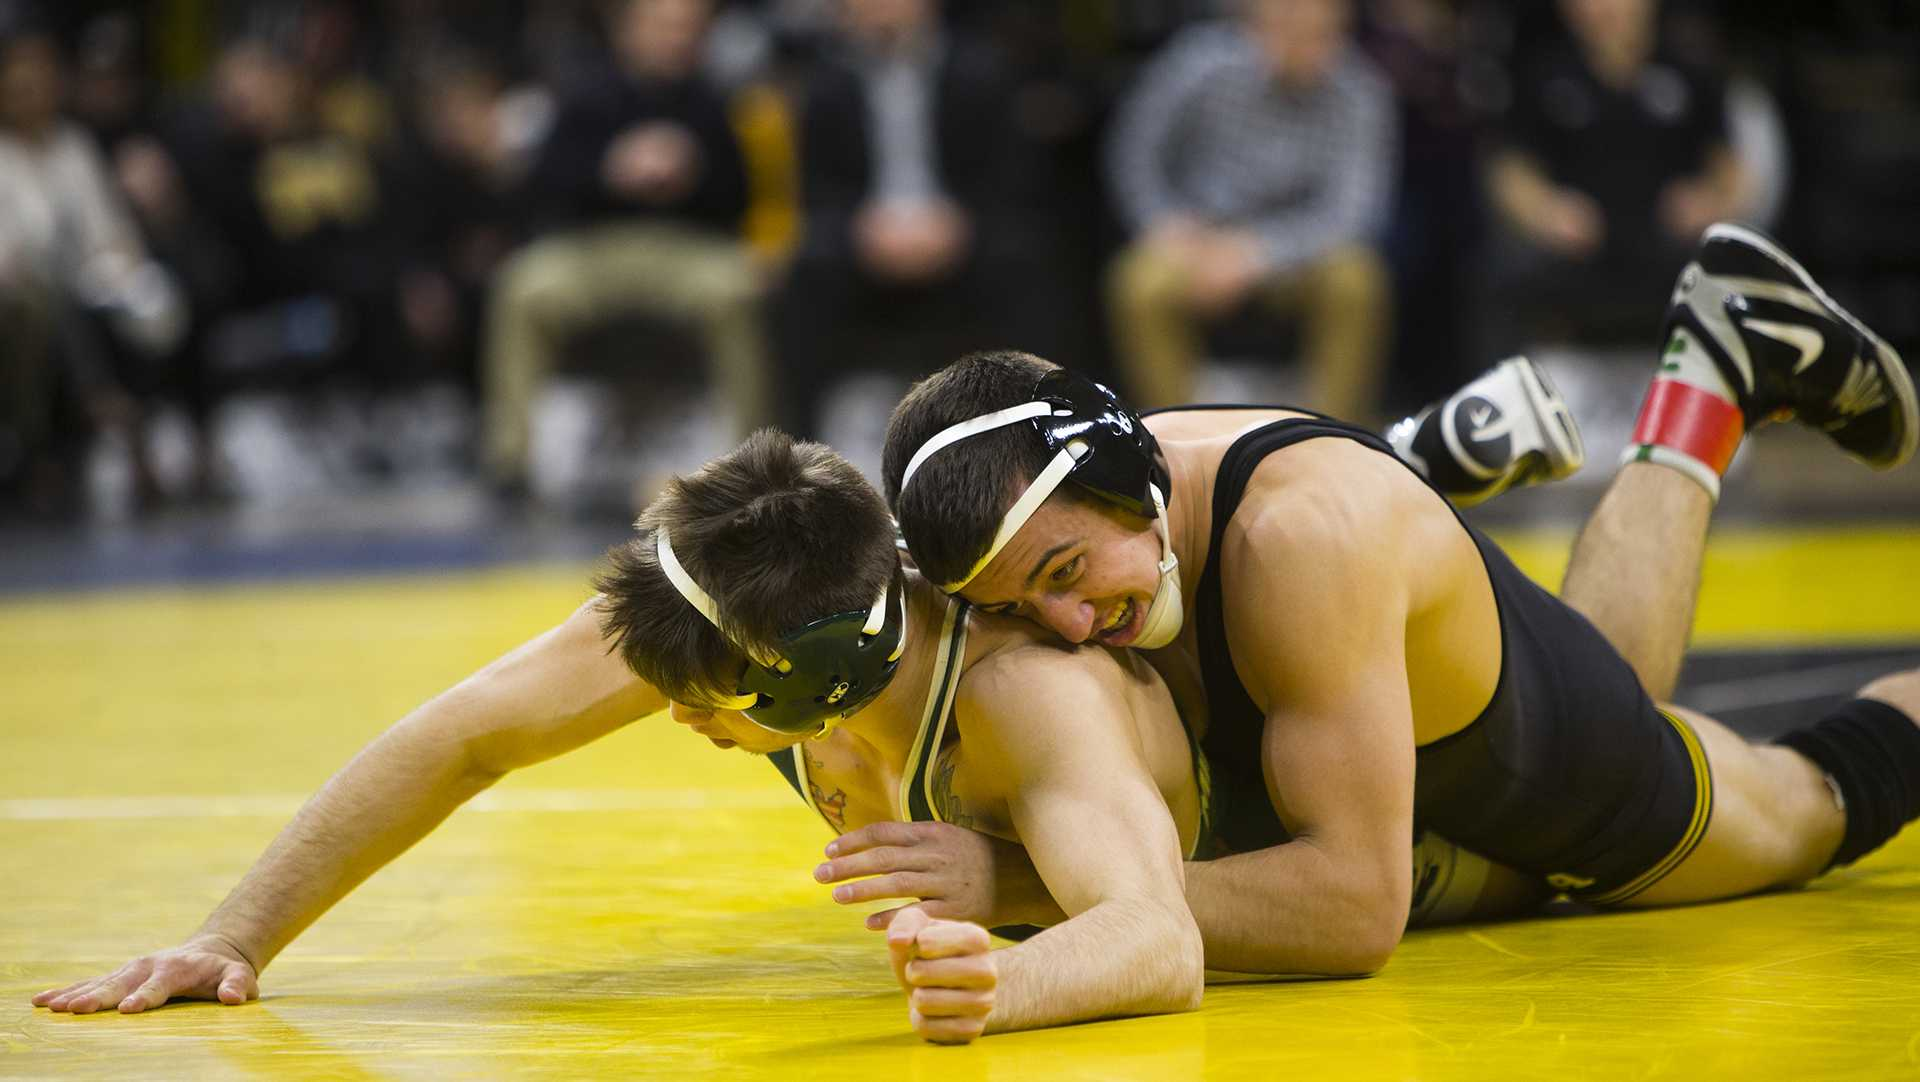 Kemerer's absence leaves a wrestling hole